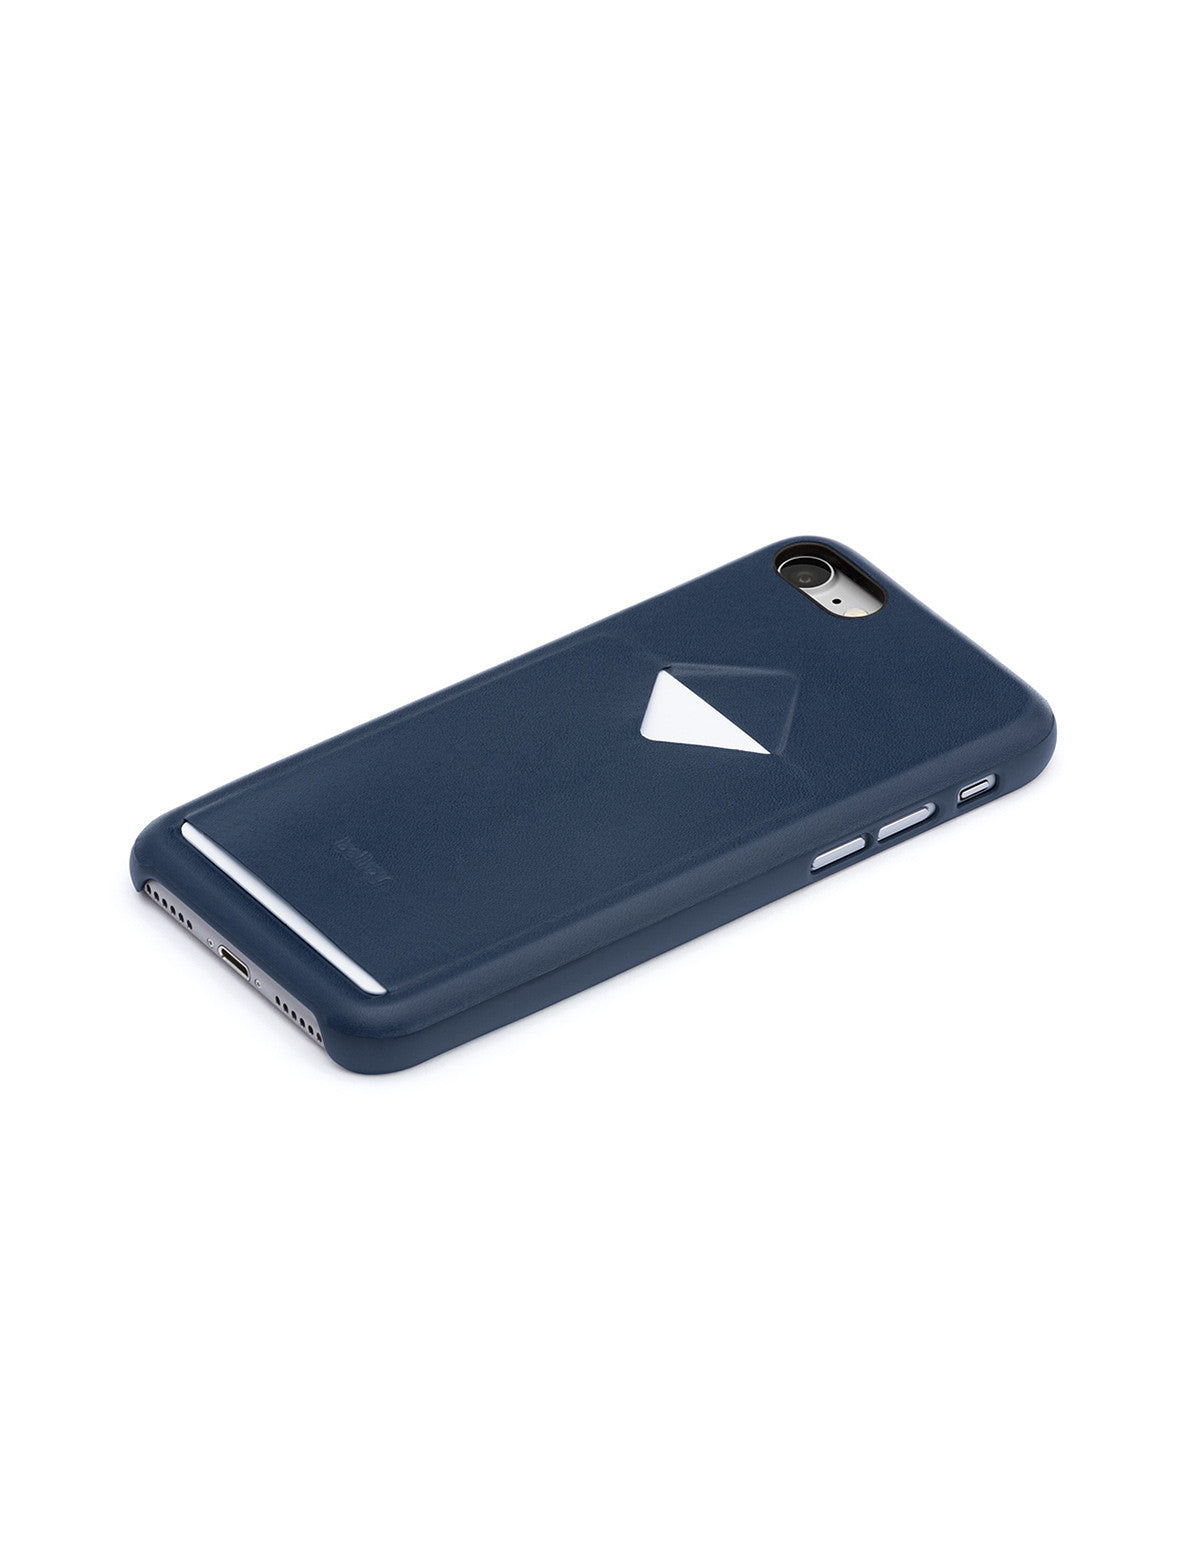 Bellroy Phone Case i7 1 Card Blue Steel - Still Life - 2